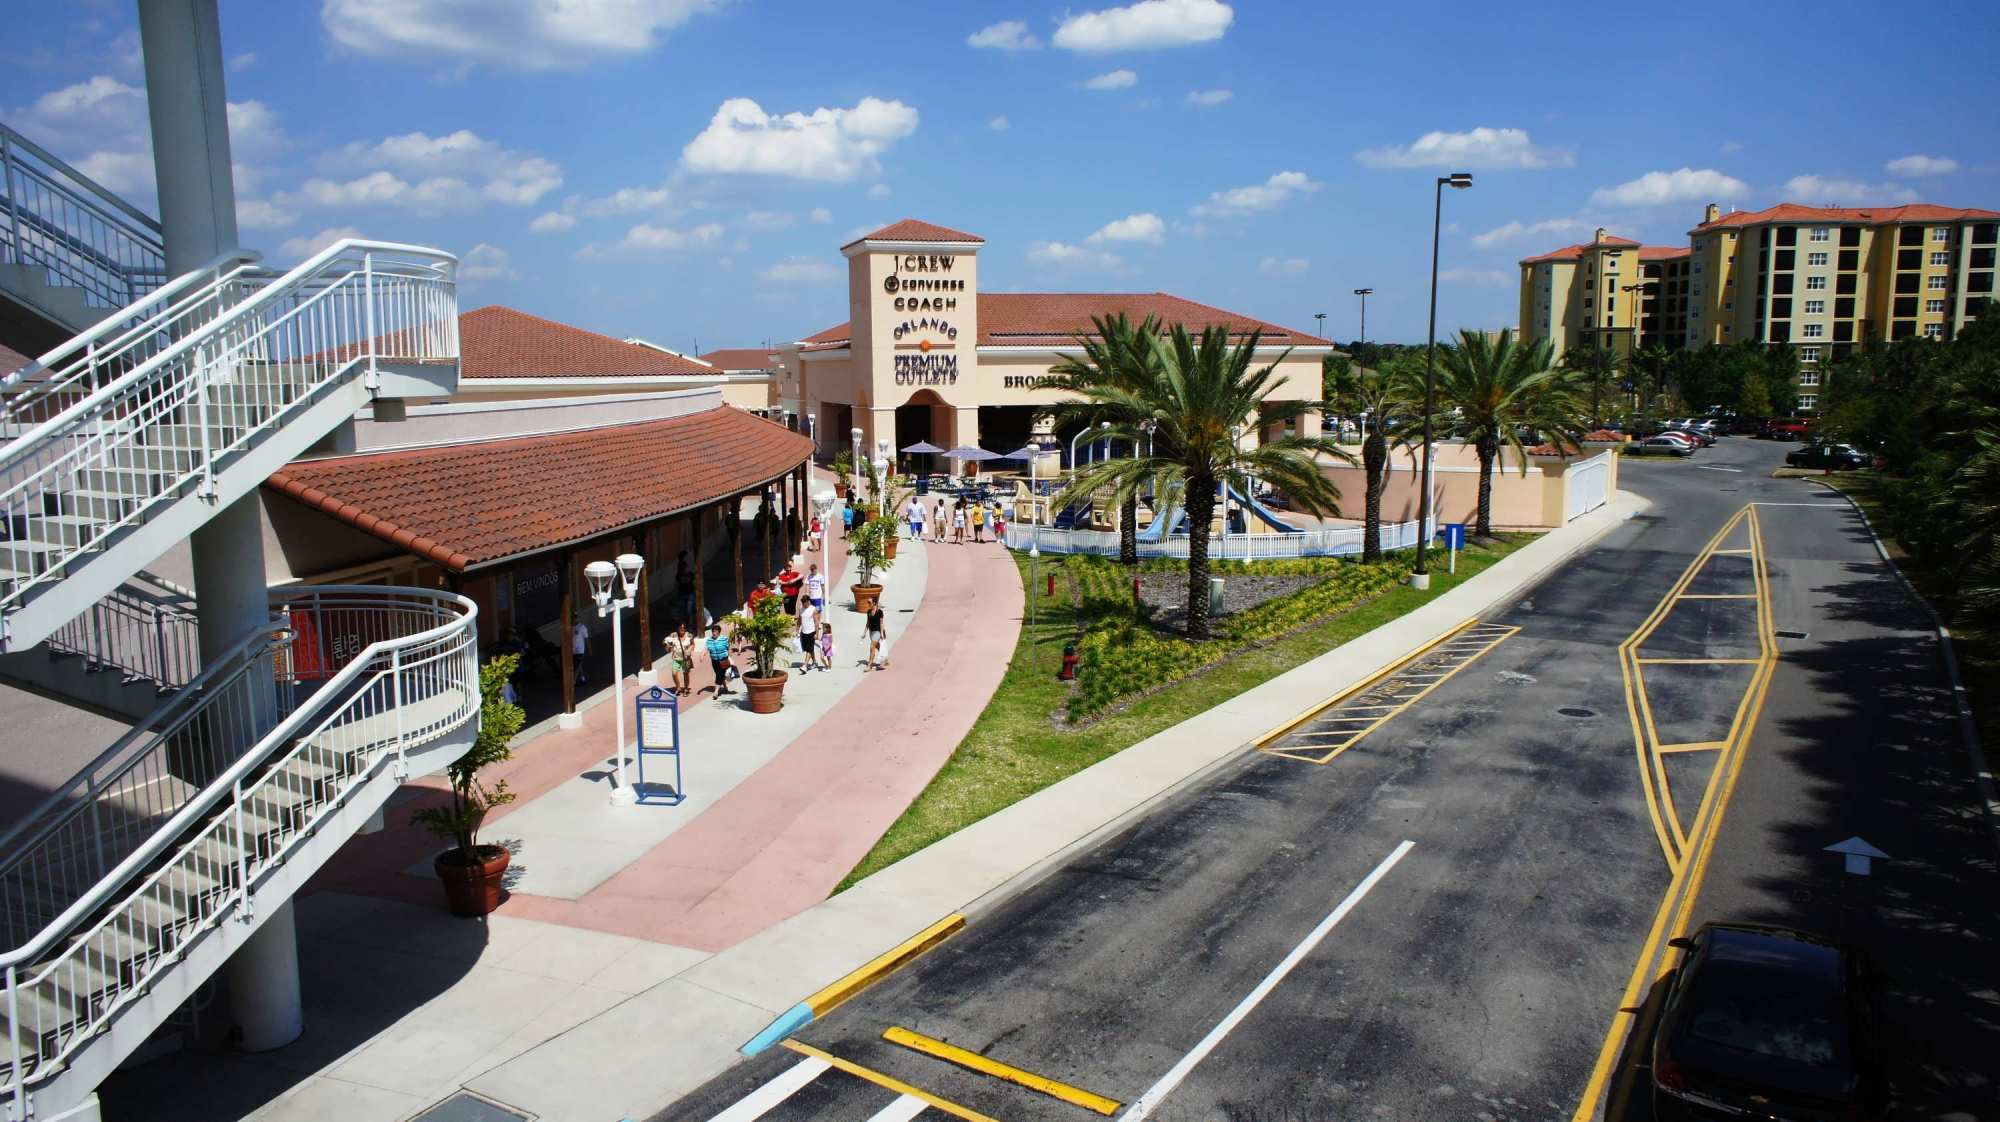 ed18122c97a5 Orlando Premium Outlets Vineland Ave  Hilton Grand Vacation Club in the  background.